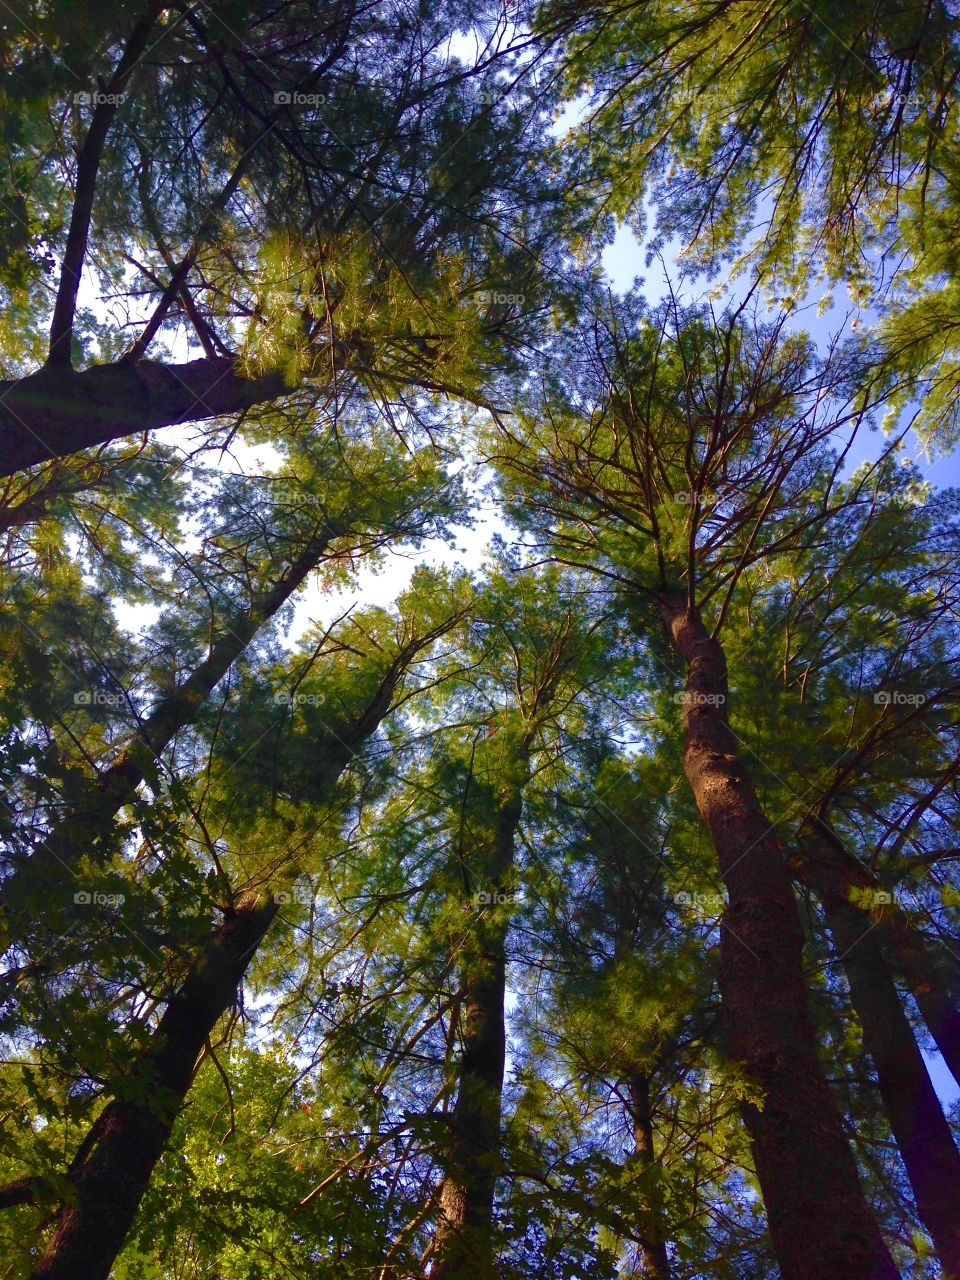 Our Pine Grove Canopy. Photo taken Looking Up from the center of our pine grove. Sun was shining through, very pretty!